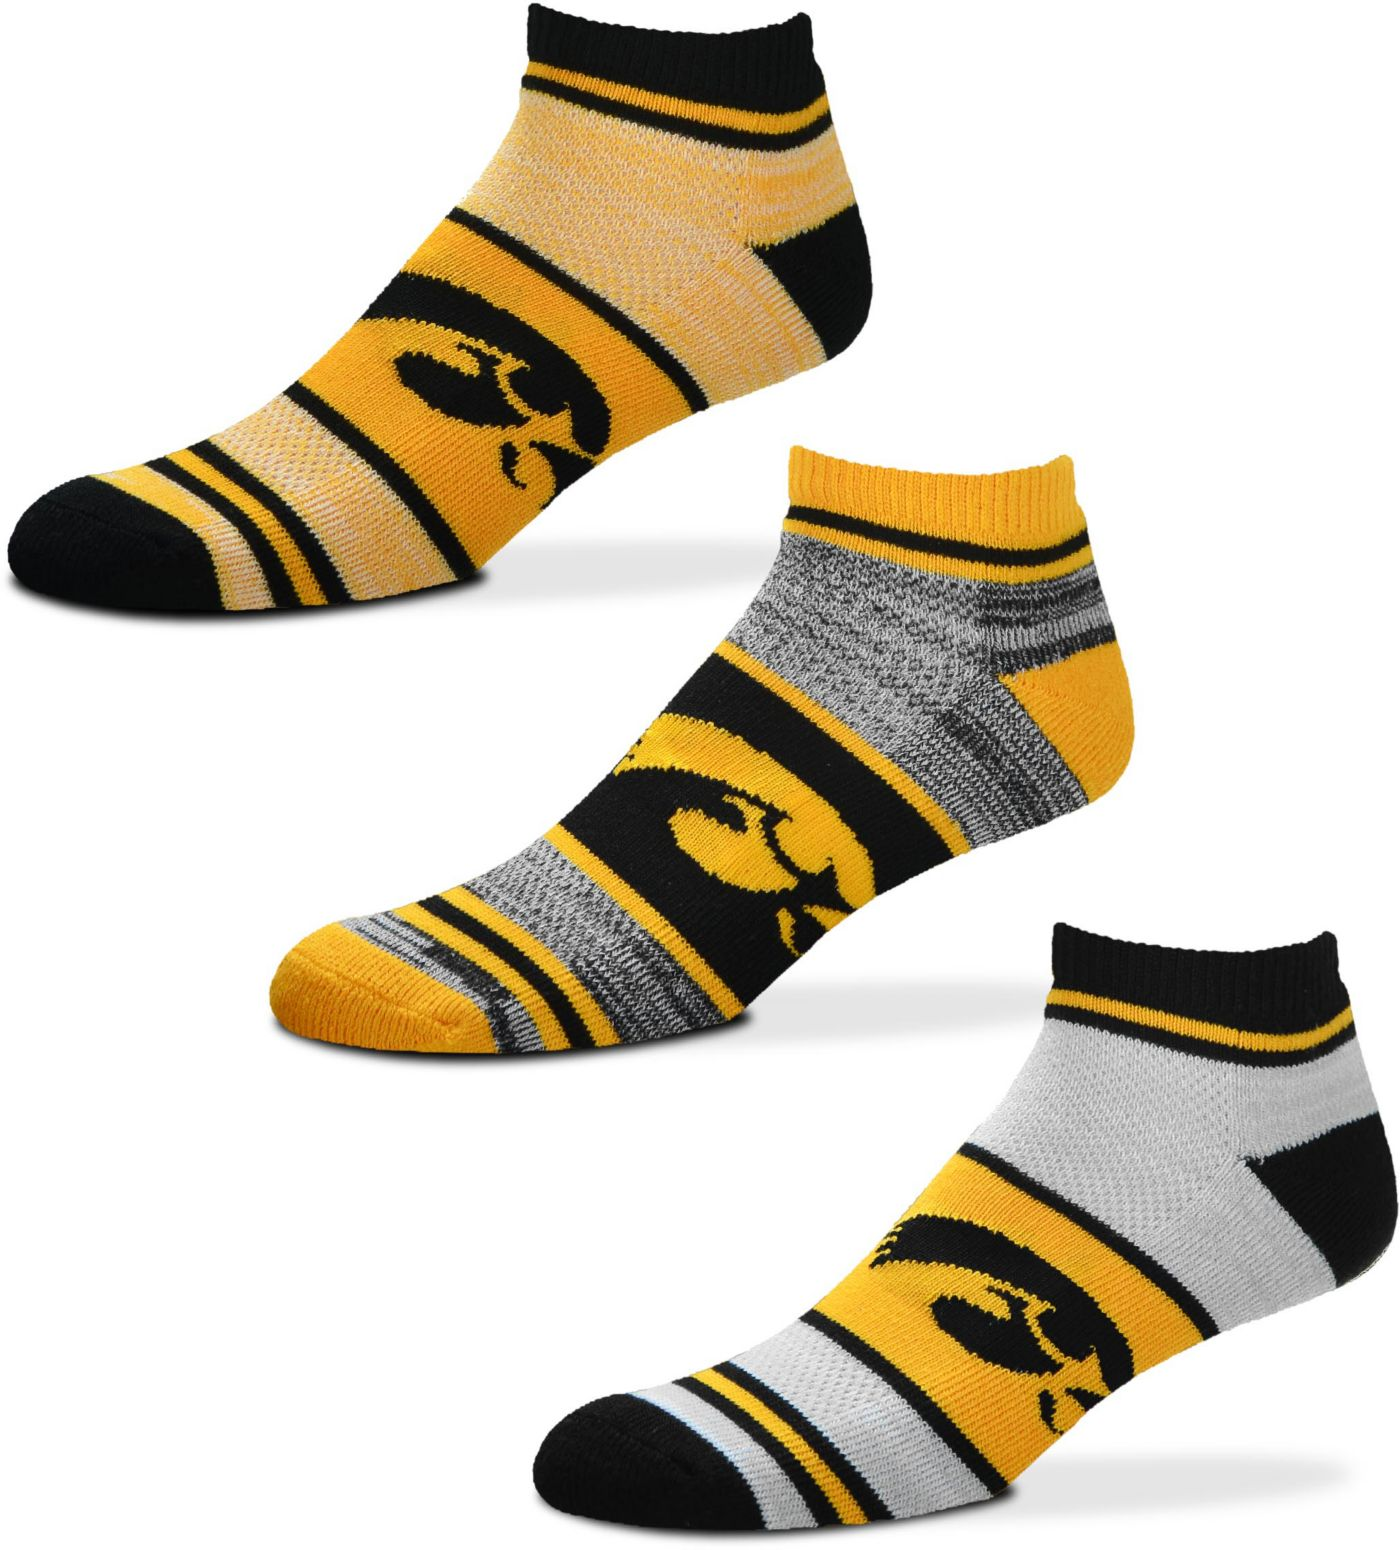 For Bare Feet Iowa Hawkeyes 3 Pack Socks